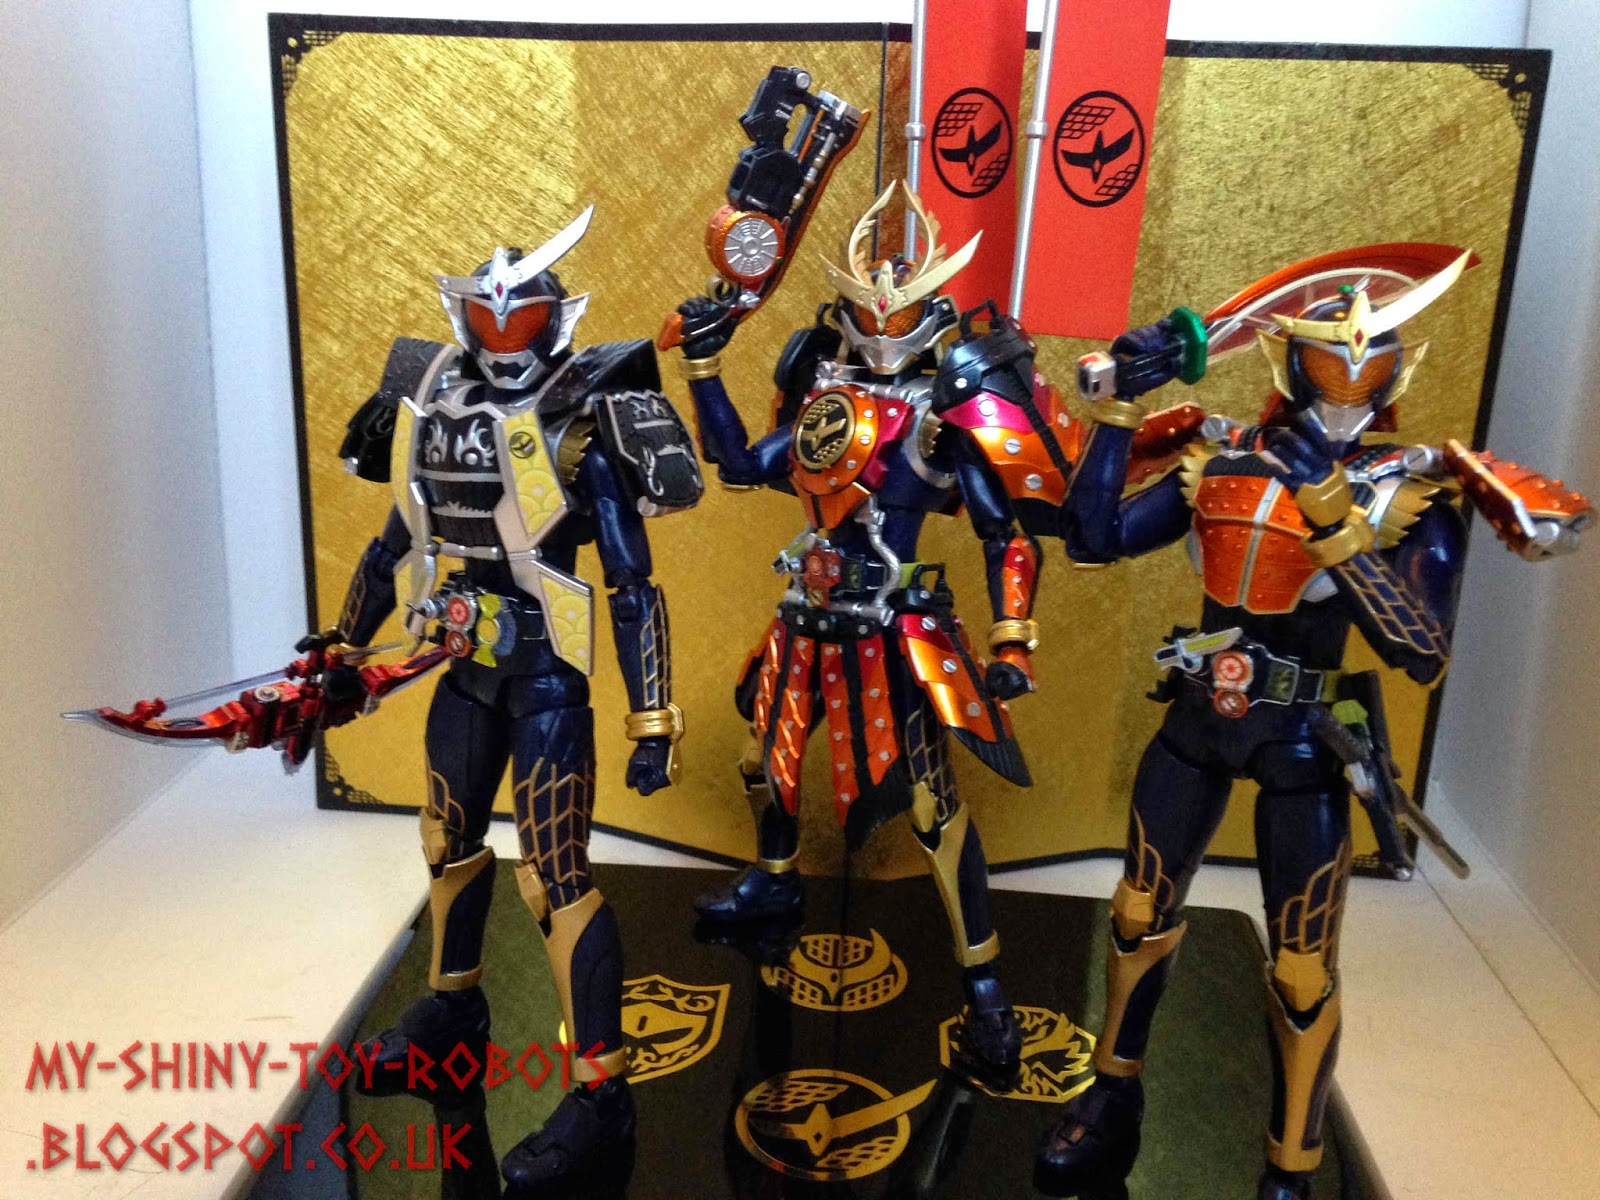 The forms of Kamen Rider Gaim